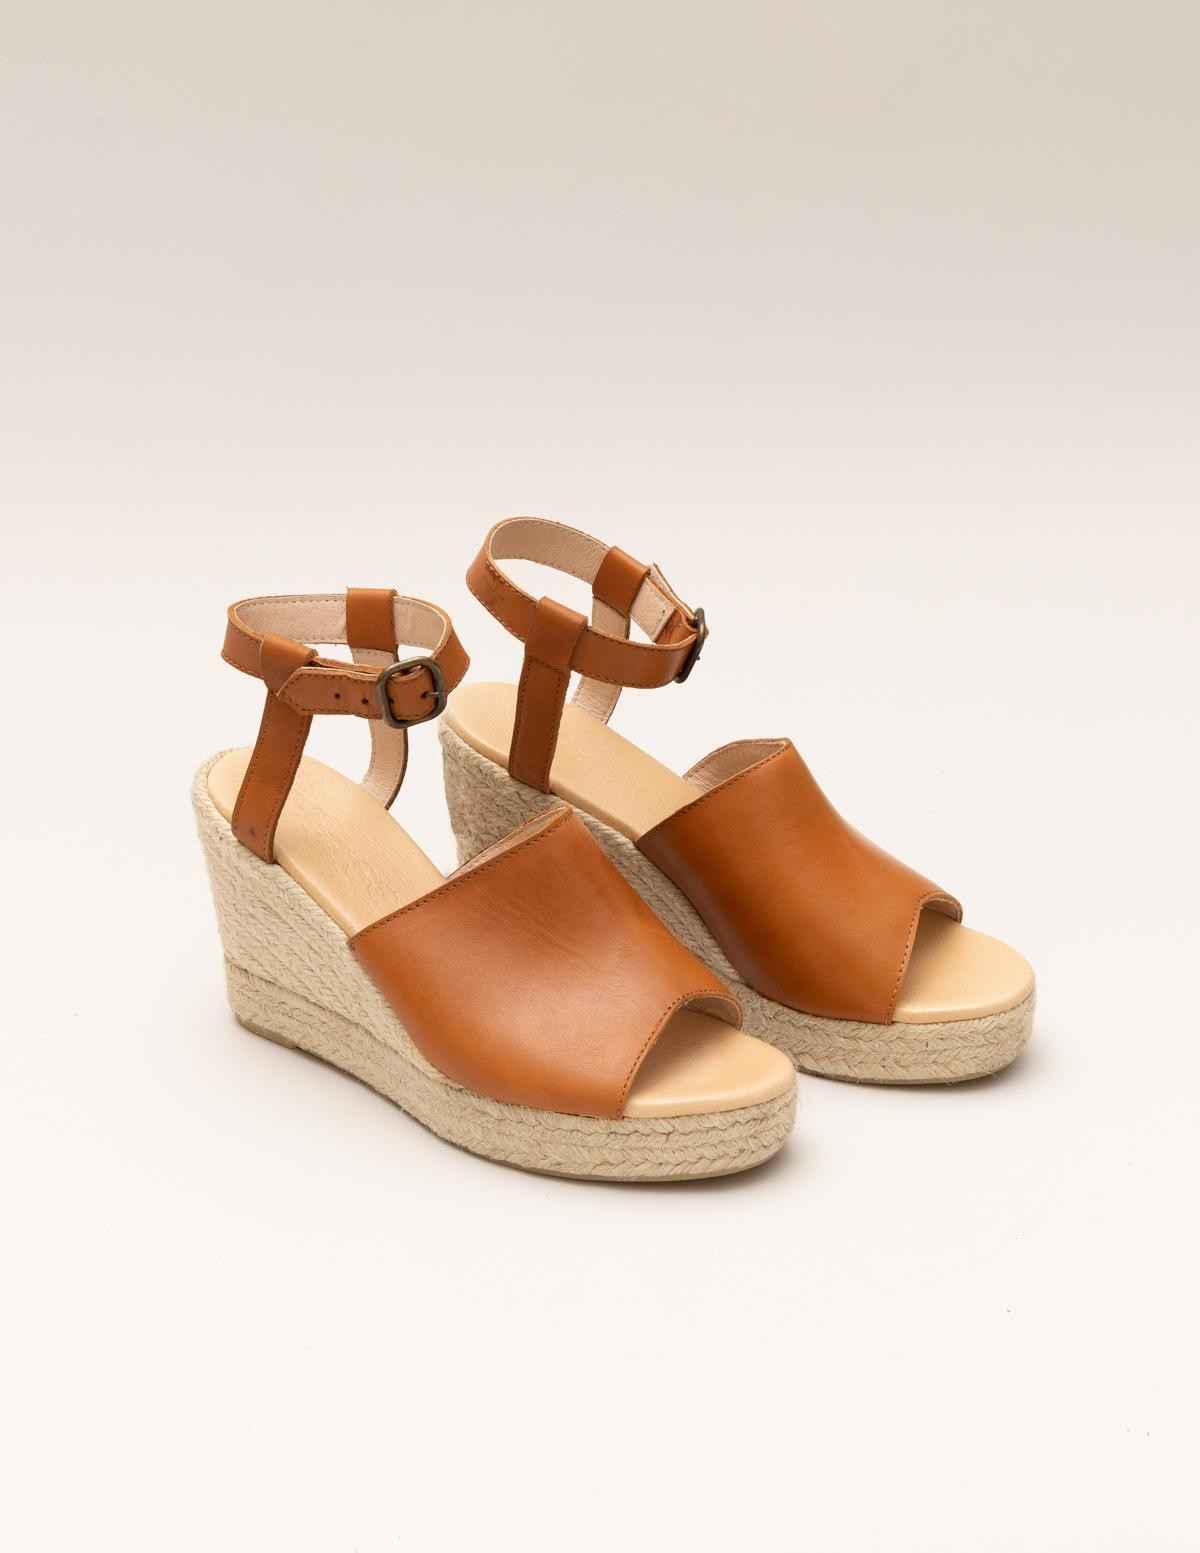 Leather and jute wedges - Item3